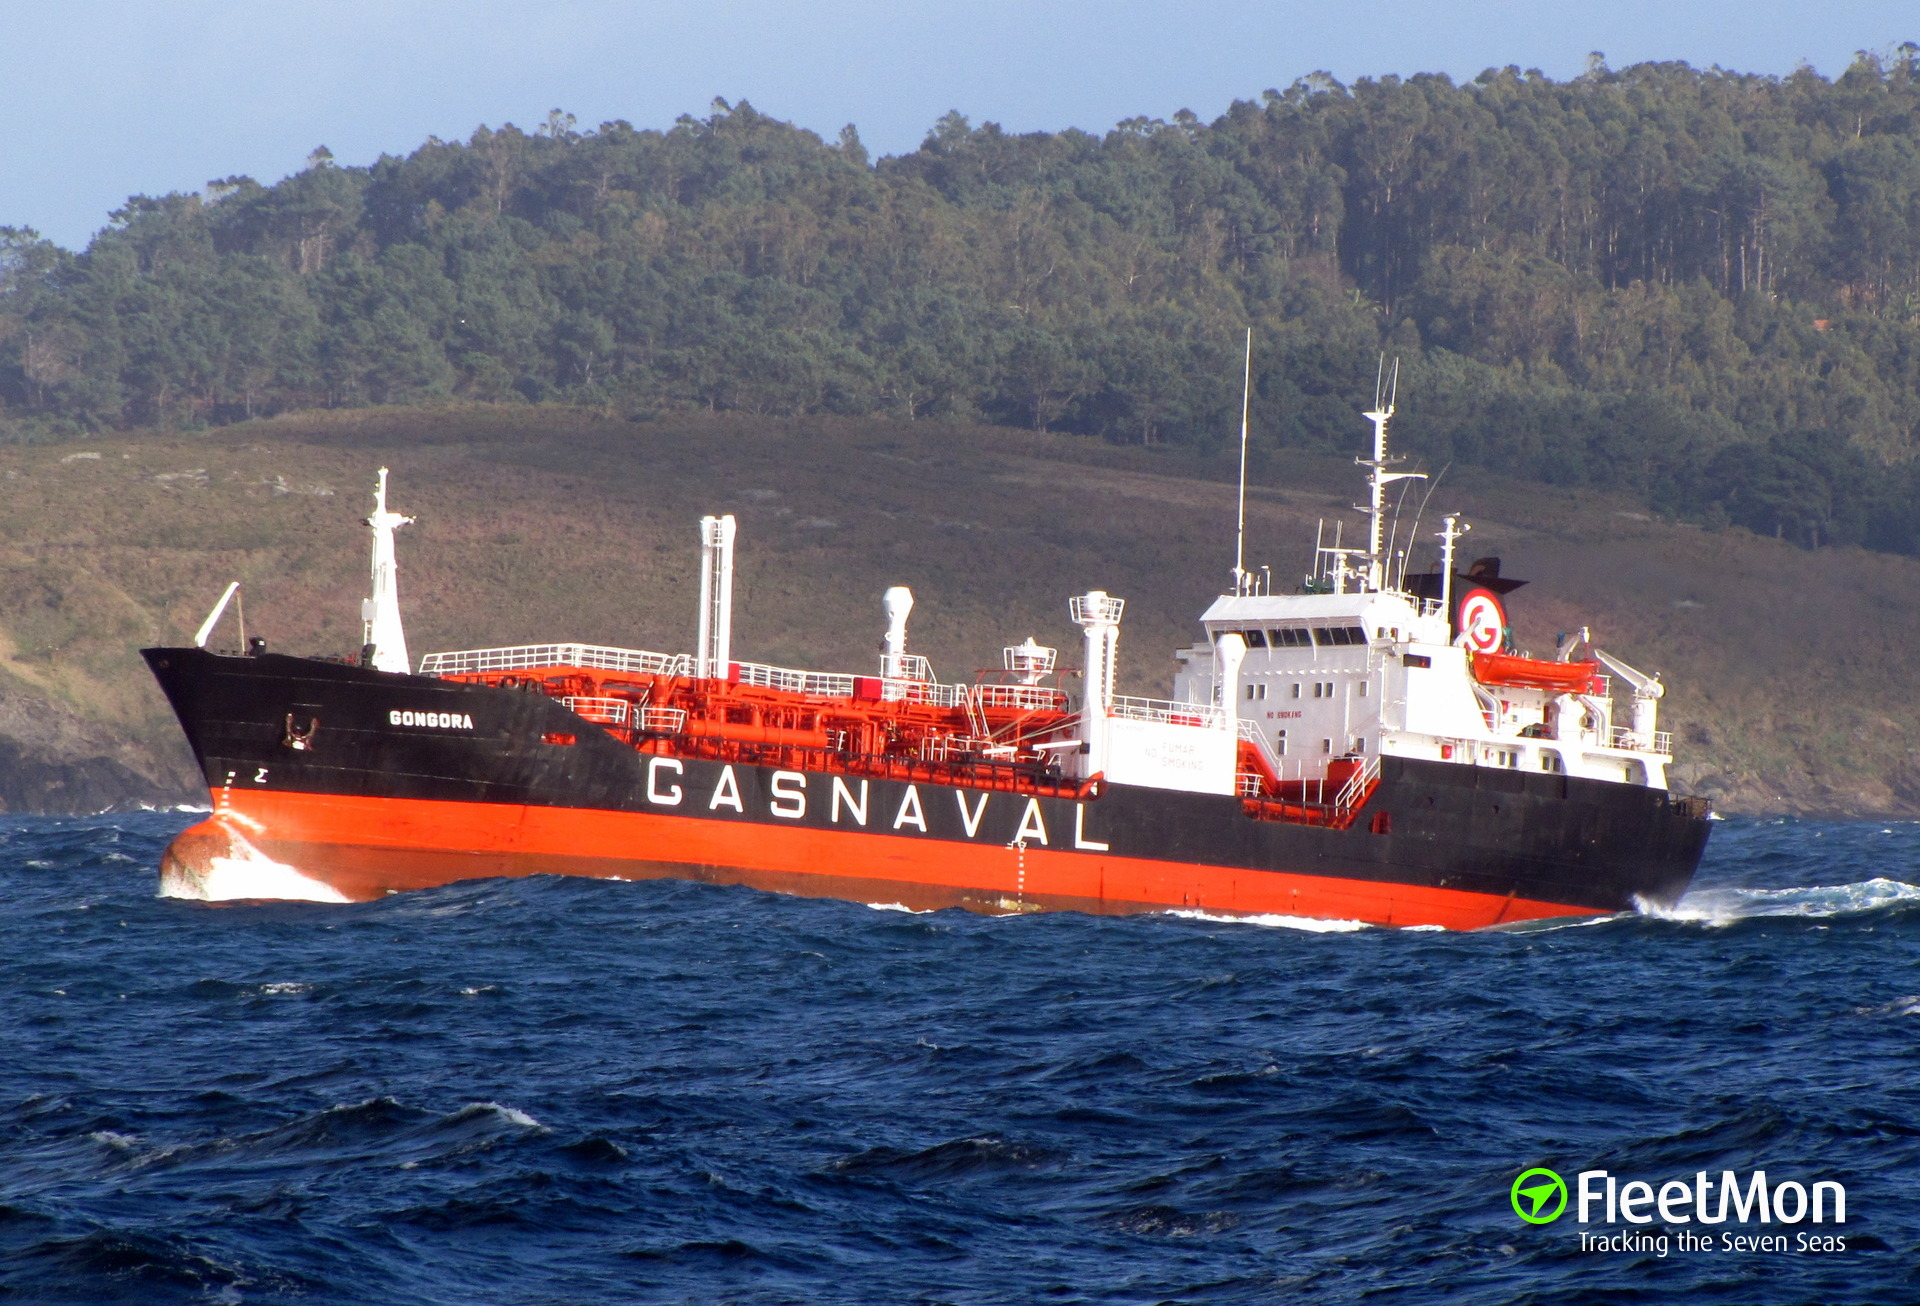 LPG tanker Virgo Gas attacked by pirates off Port of Spain, Trinidad and Tobago